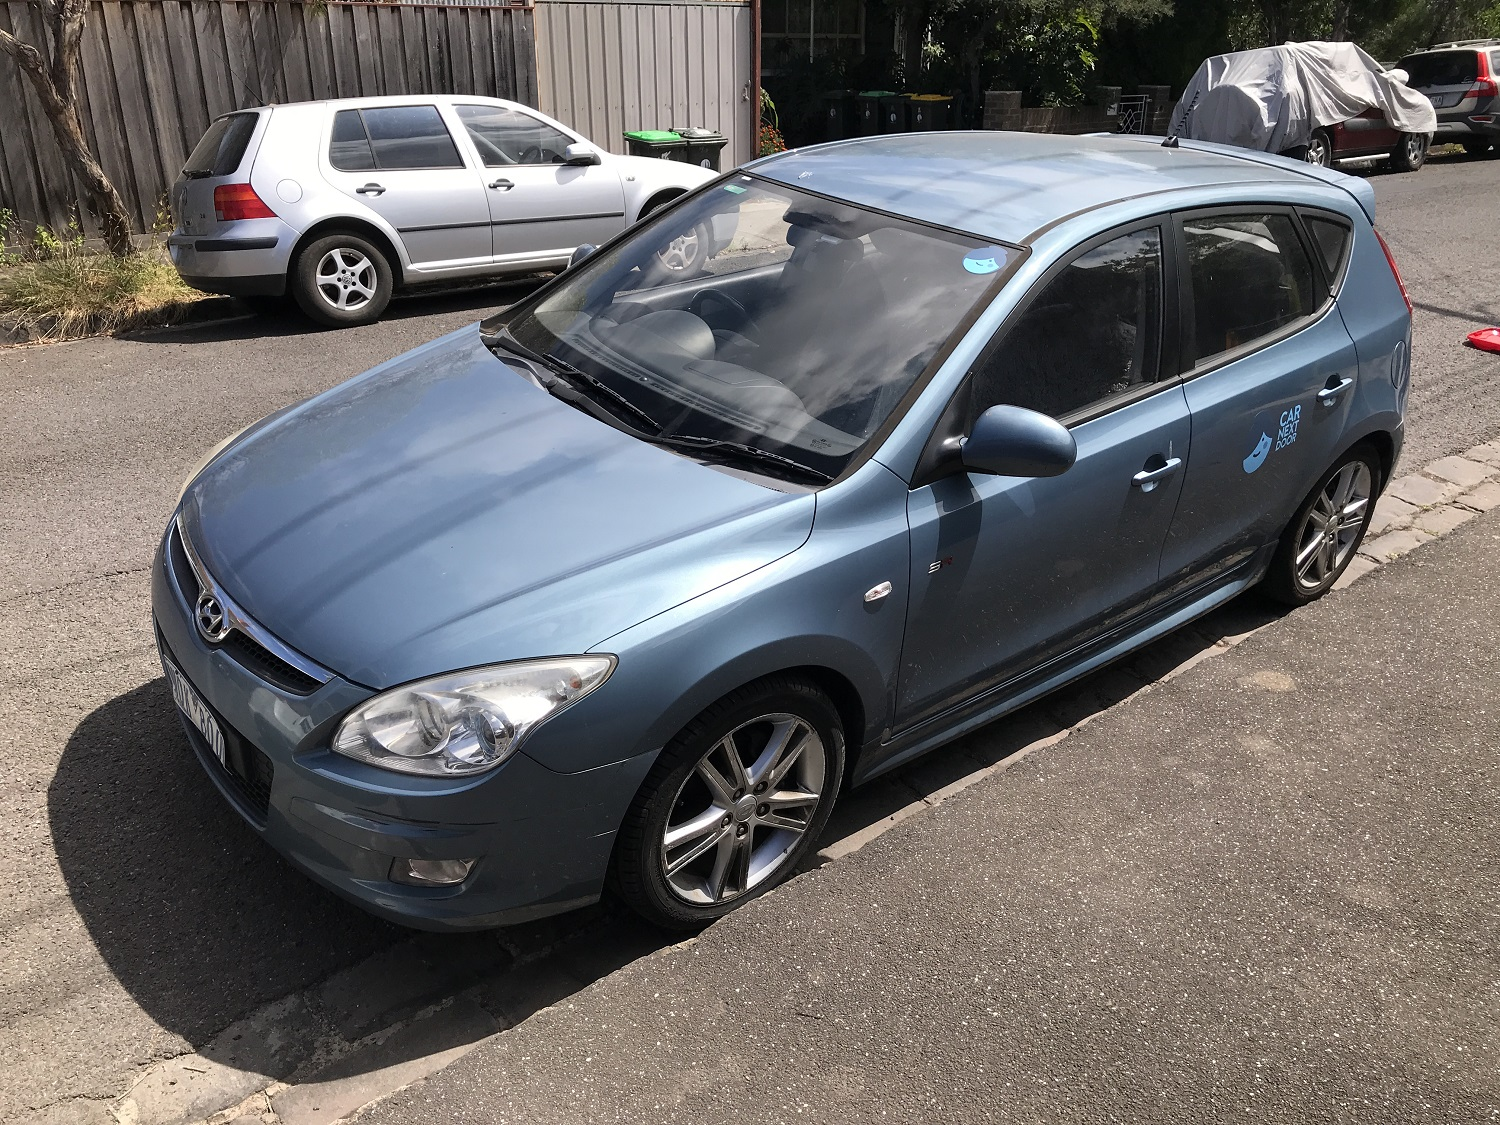 Picture of Warren's 2008 Hyundai i30